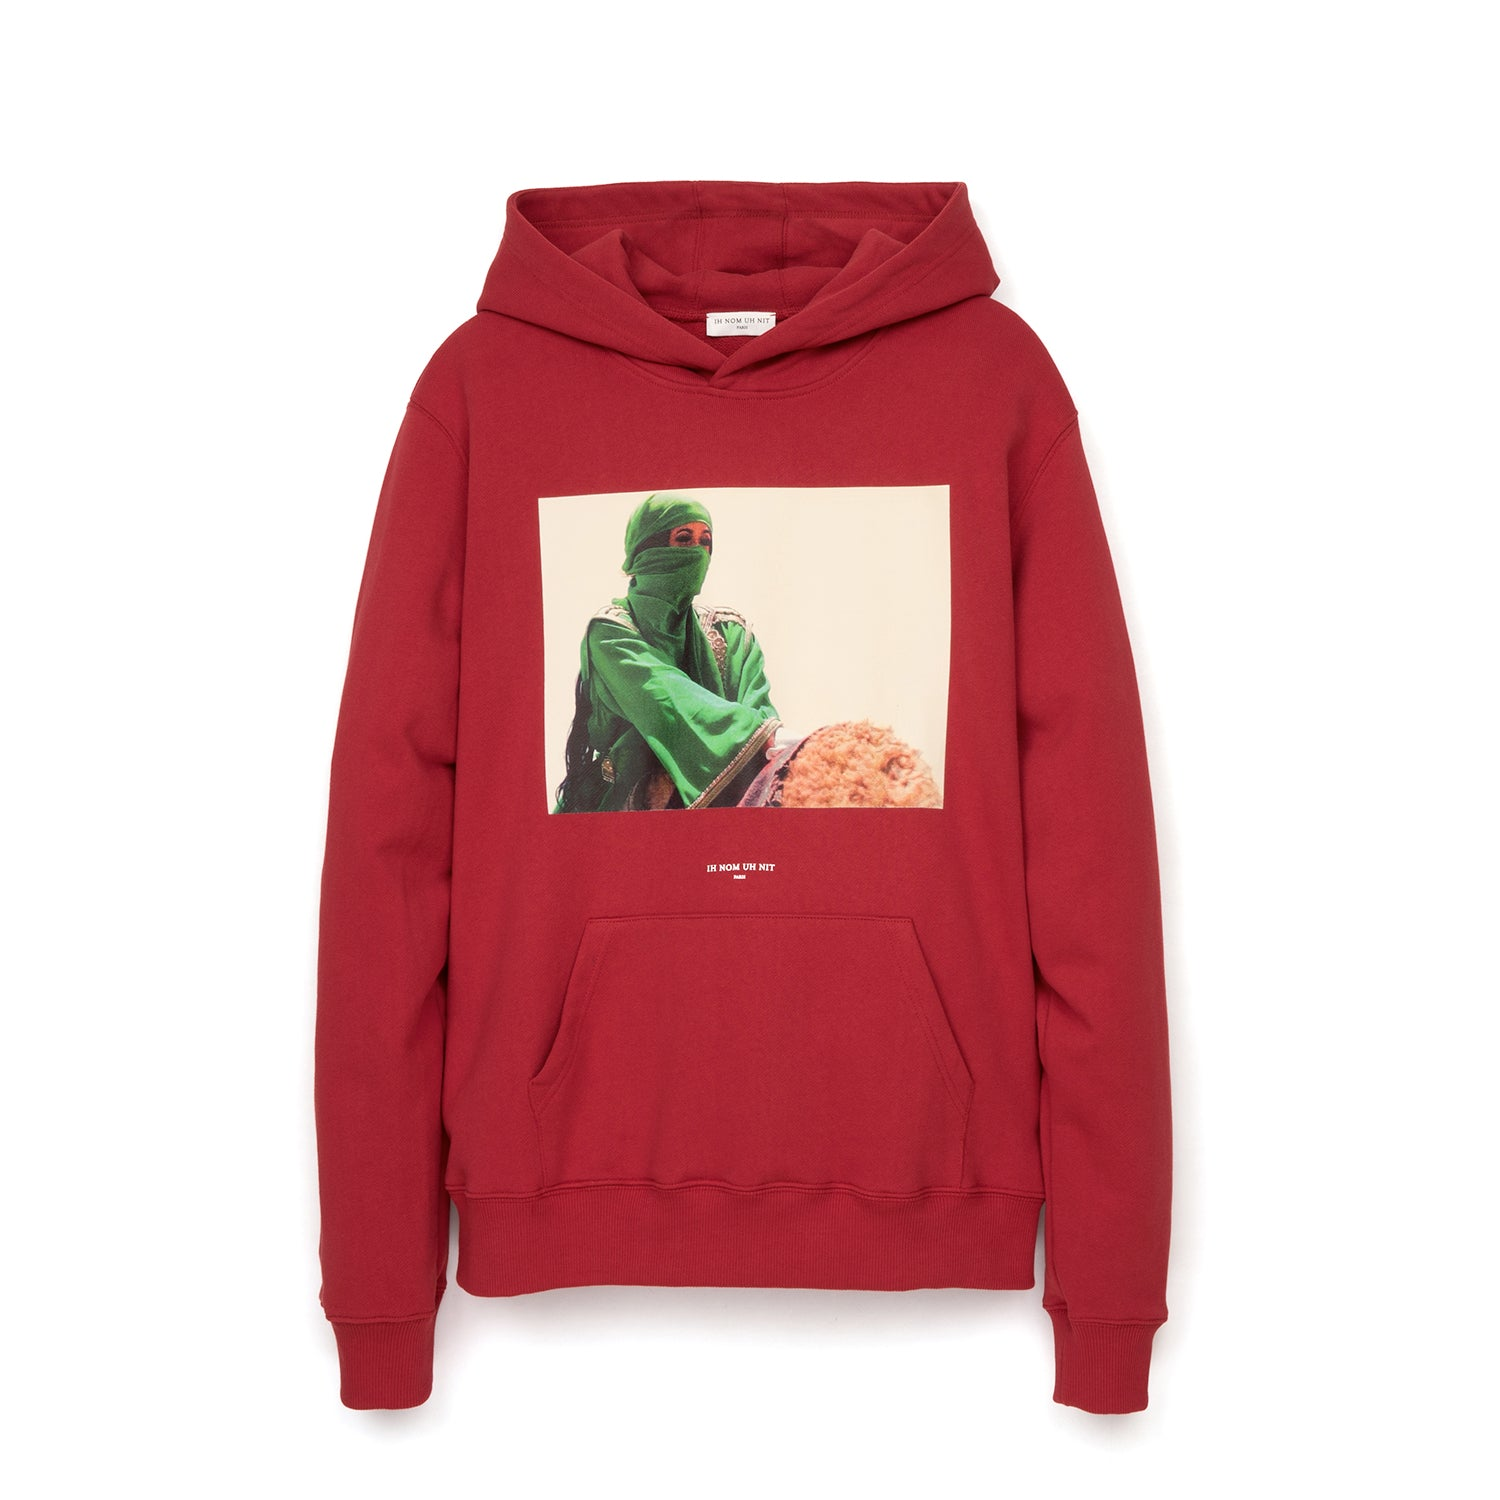 IH NOM UH NIT Green Woman Hoodie Red